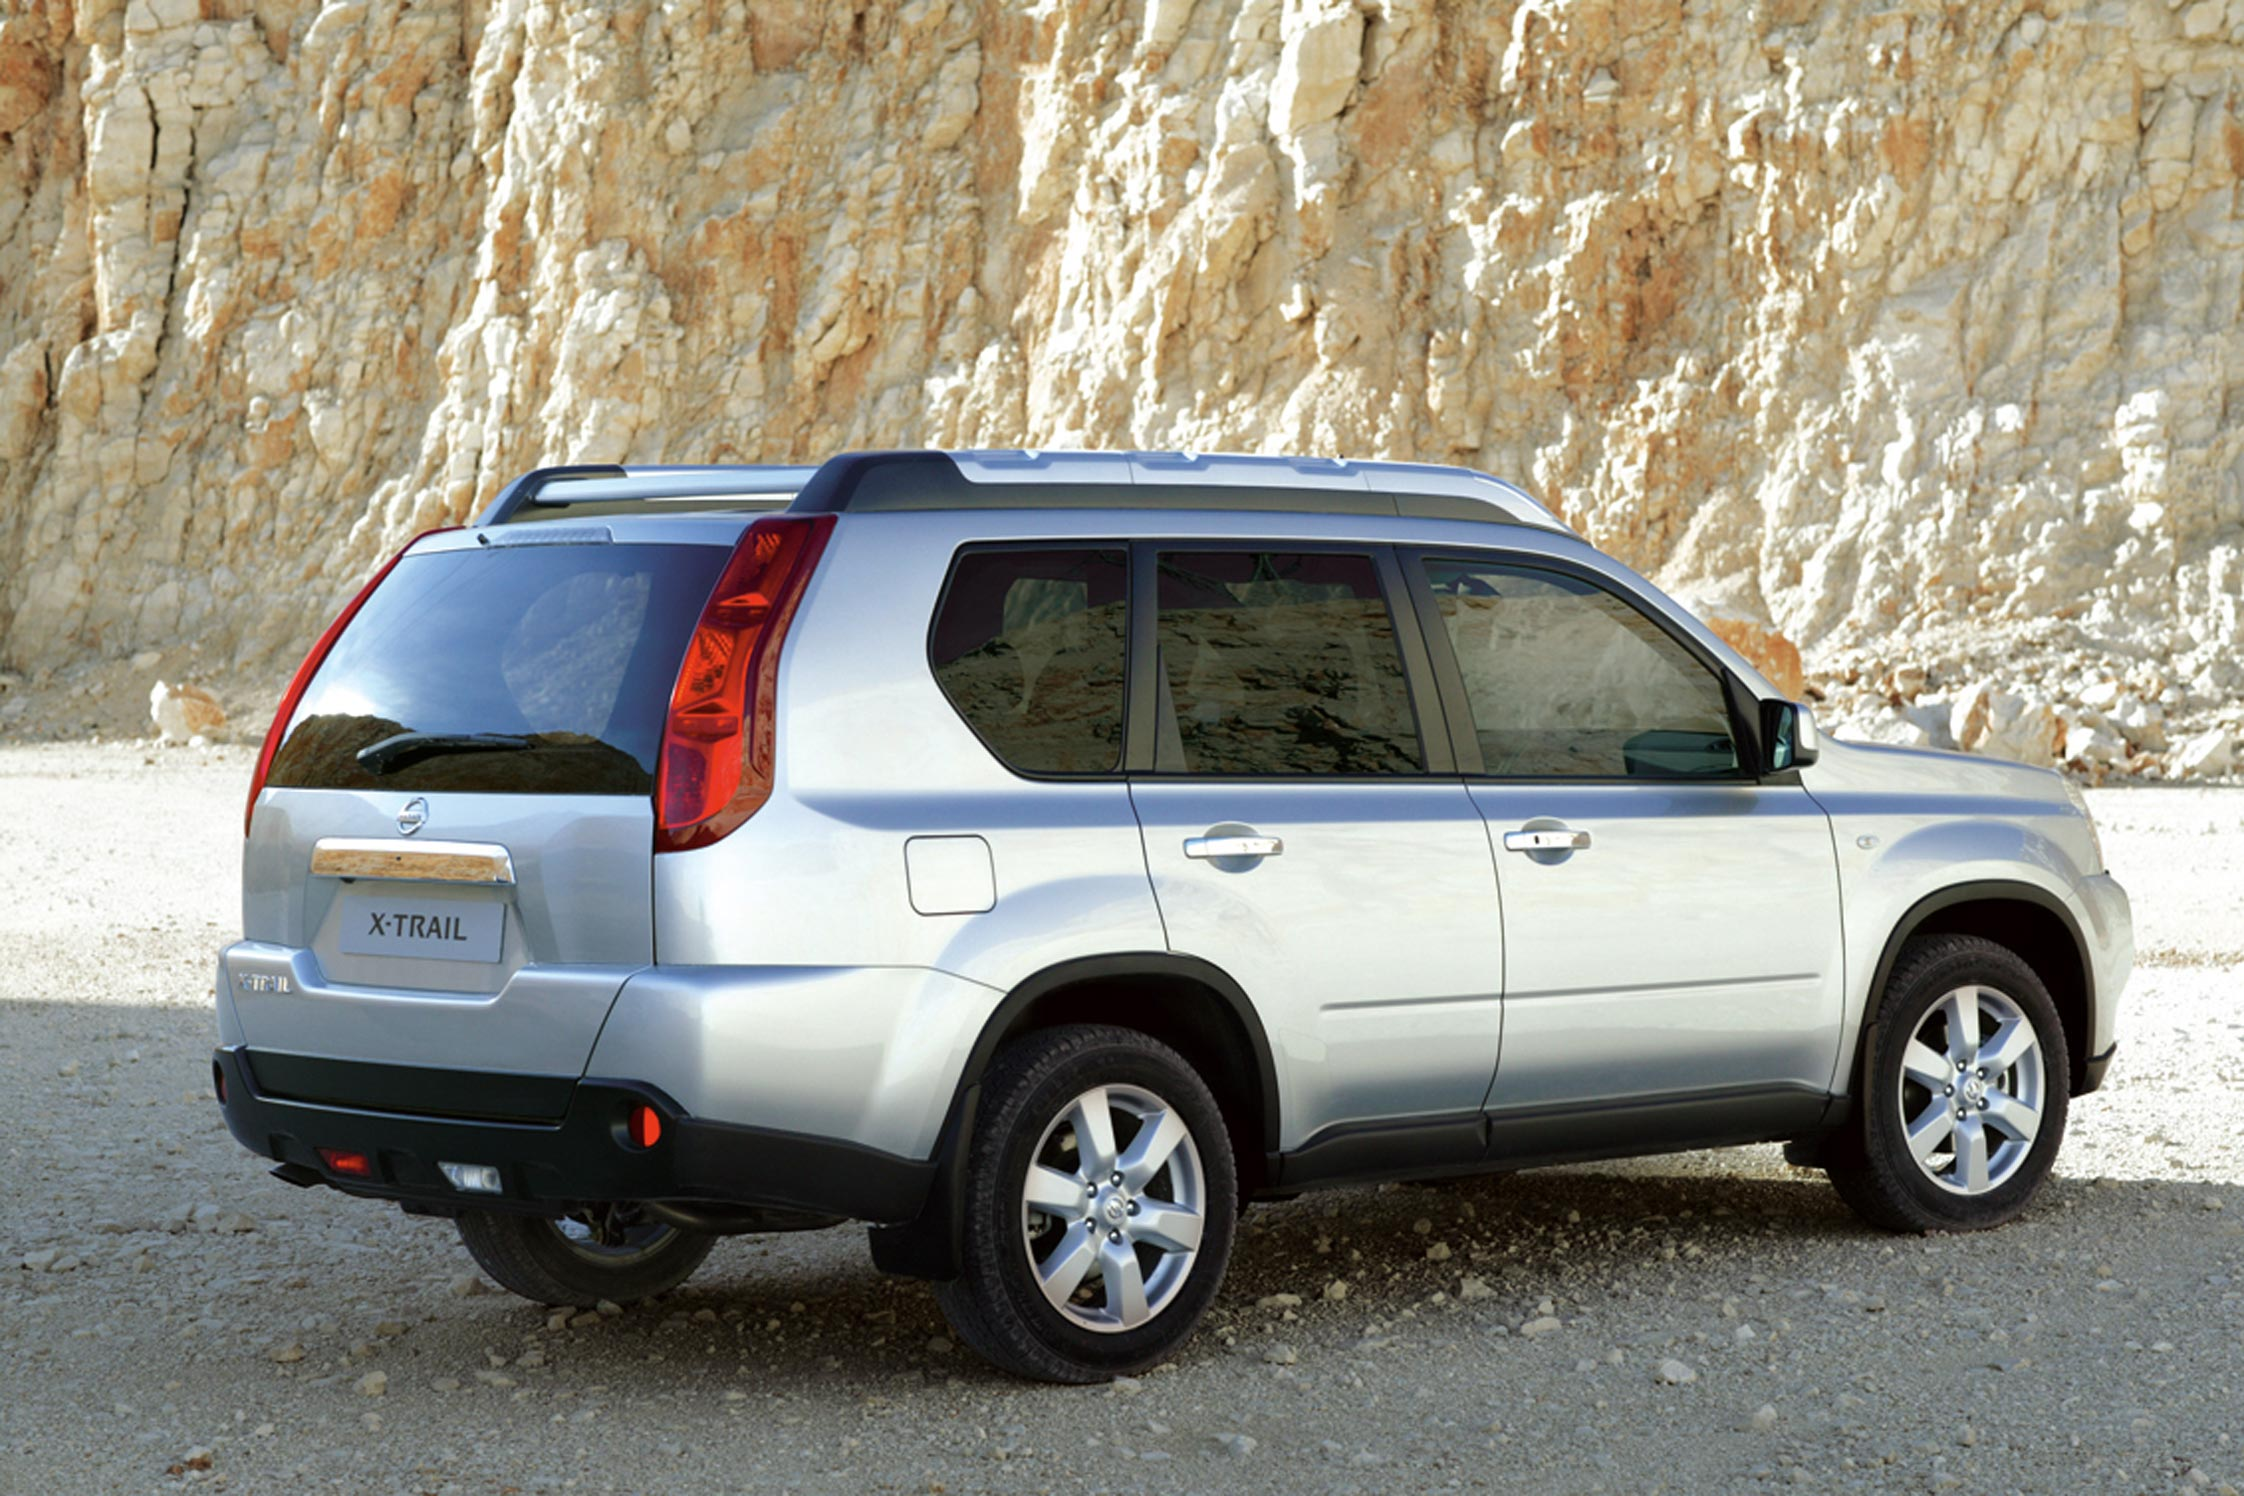 2003 Nissan X-Trail Suv 5-door